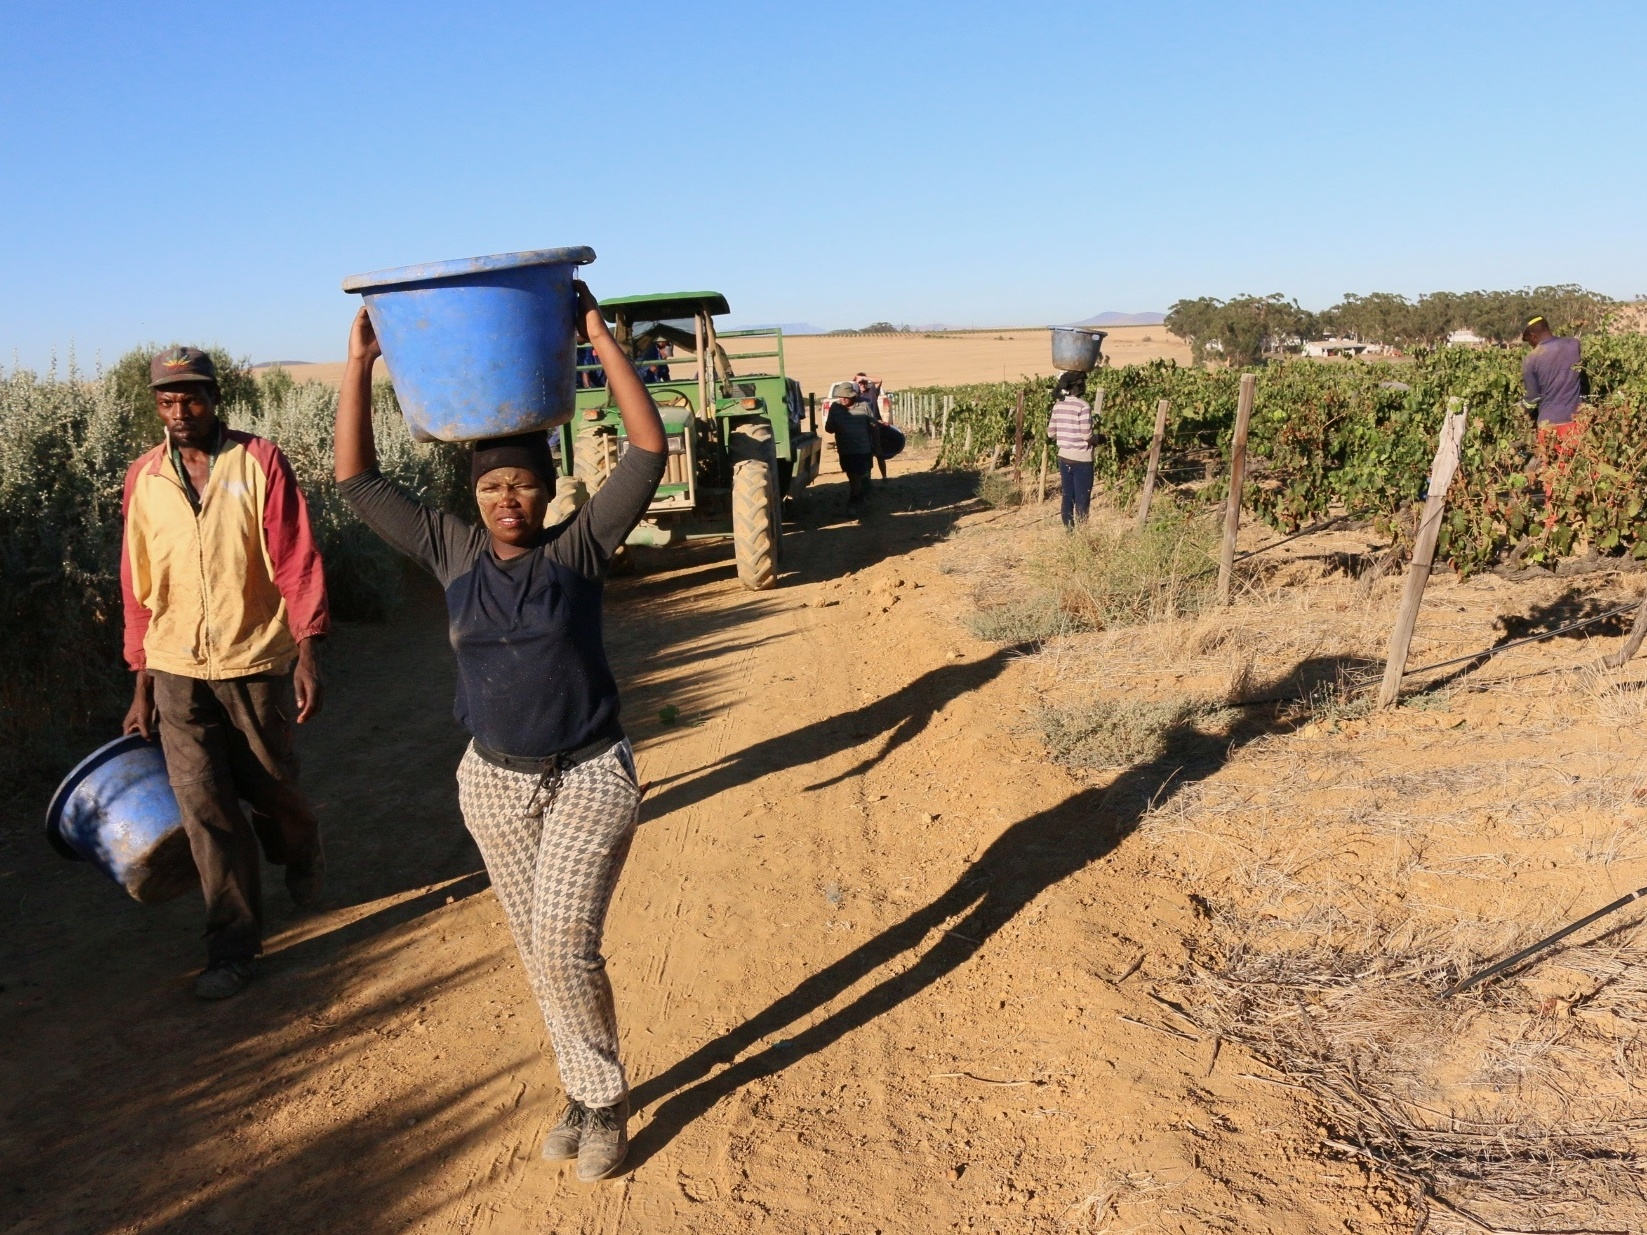 Seasonal workers help with the harvest at the Shiraz vineyard. Most come from South Africa or Zimbabwe.